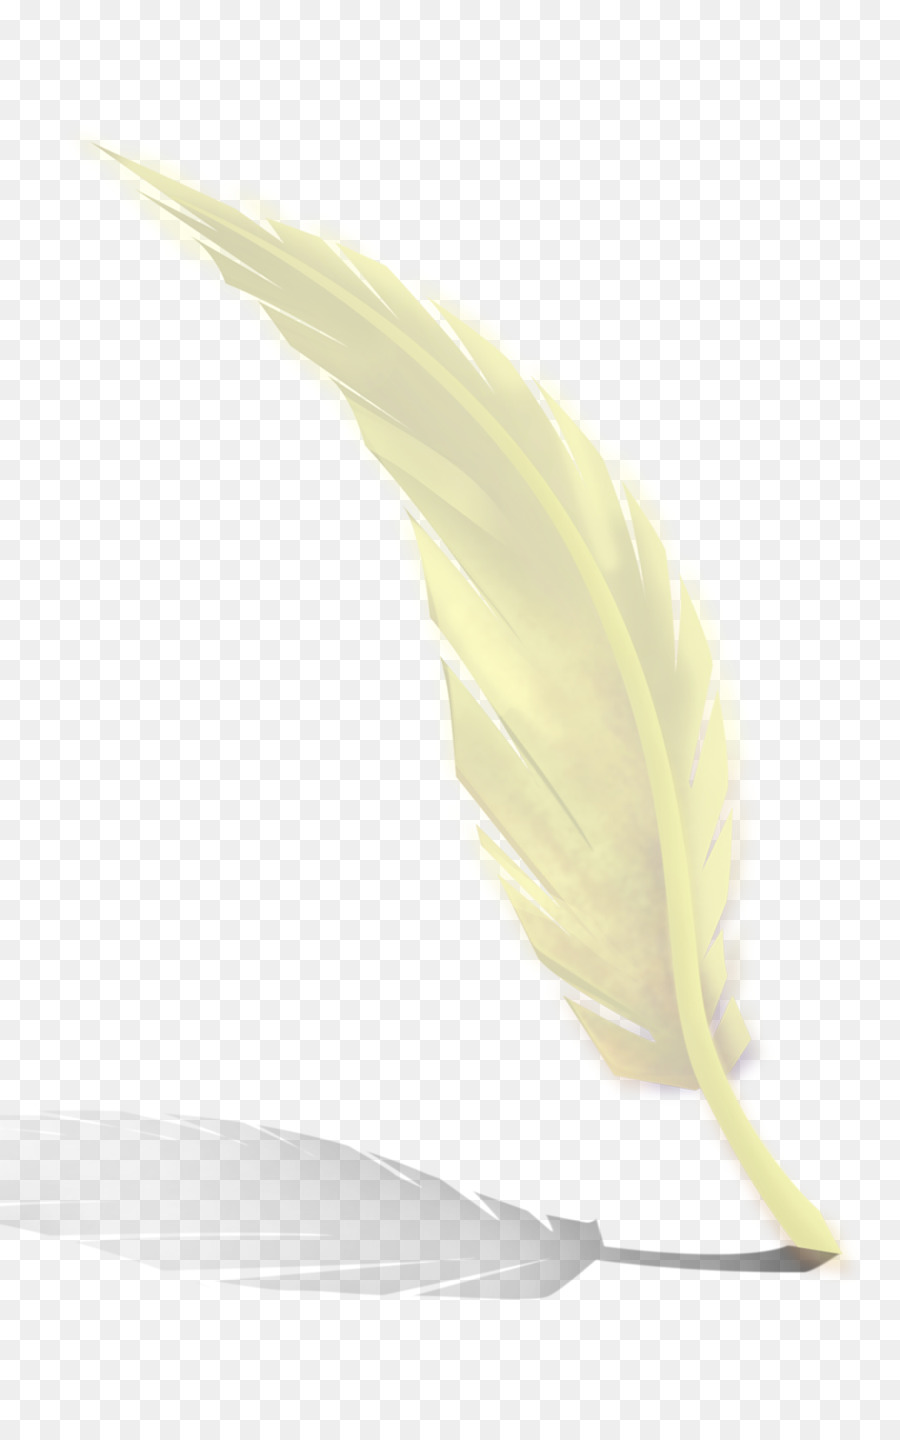 Yellow feather material white feathers png download 10001600 yellow feather material white feathers mightylinksfo